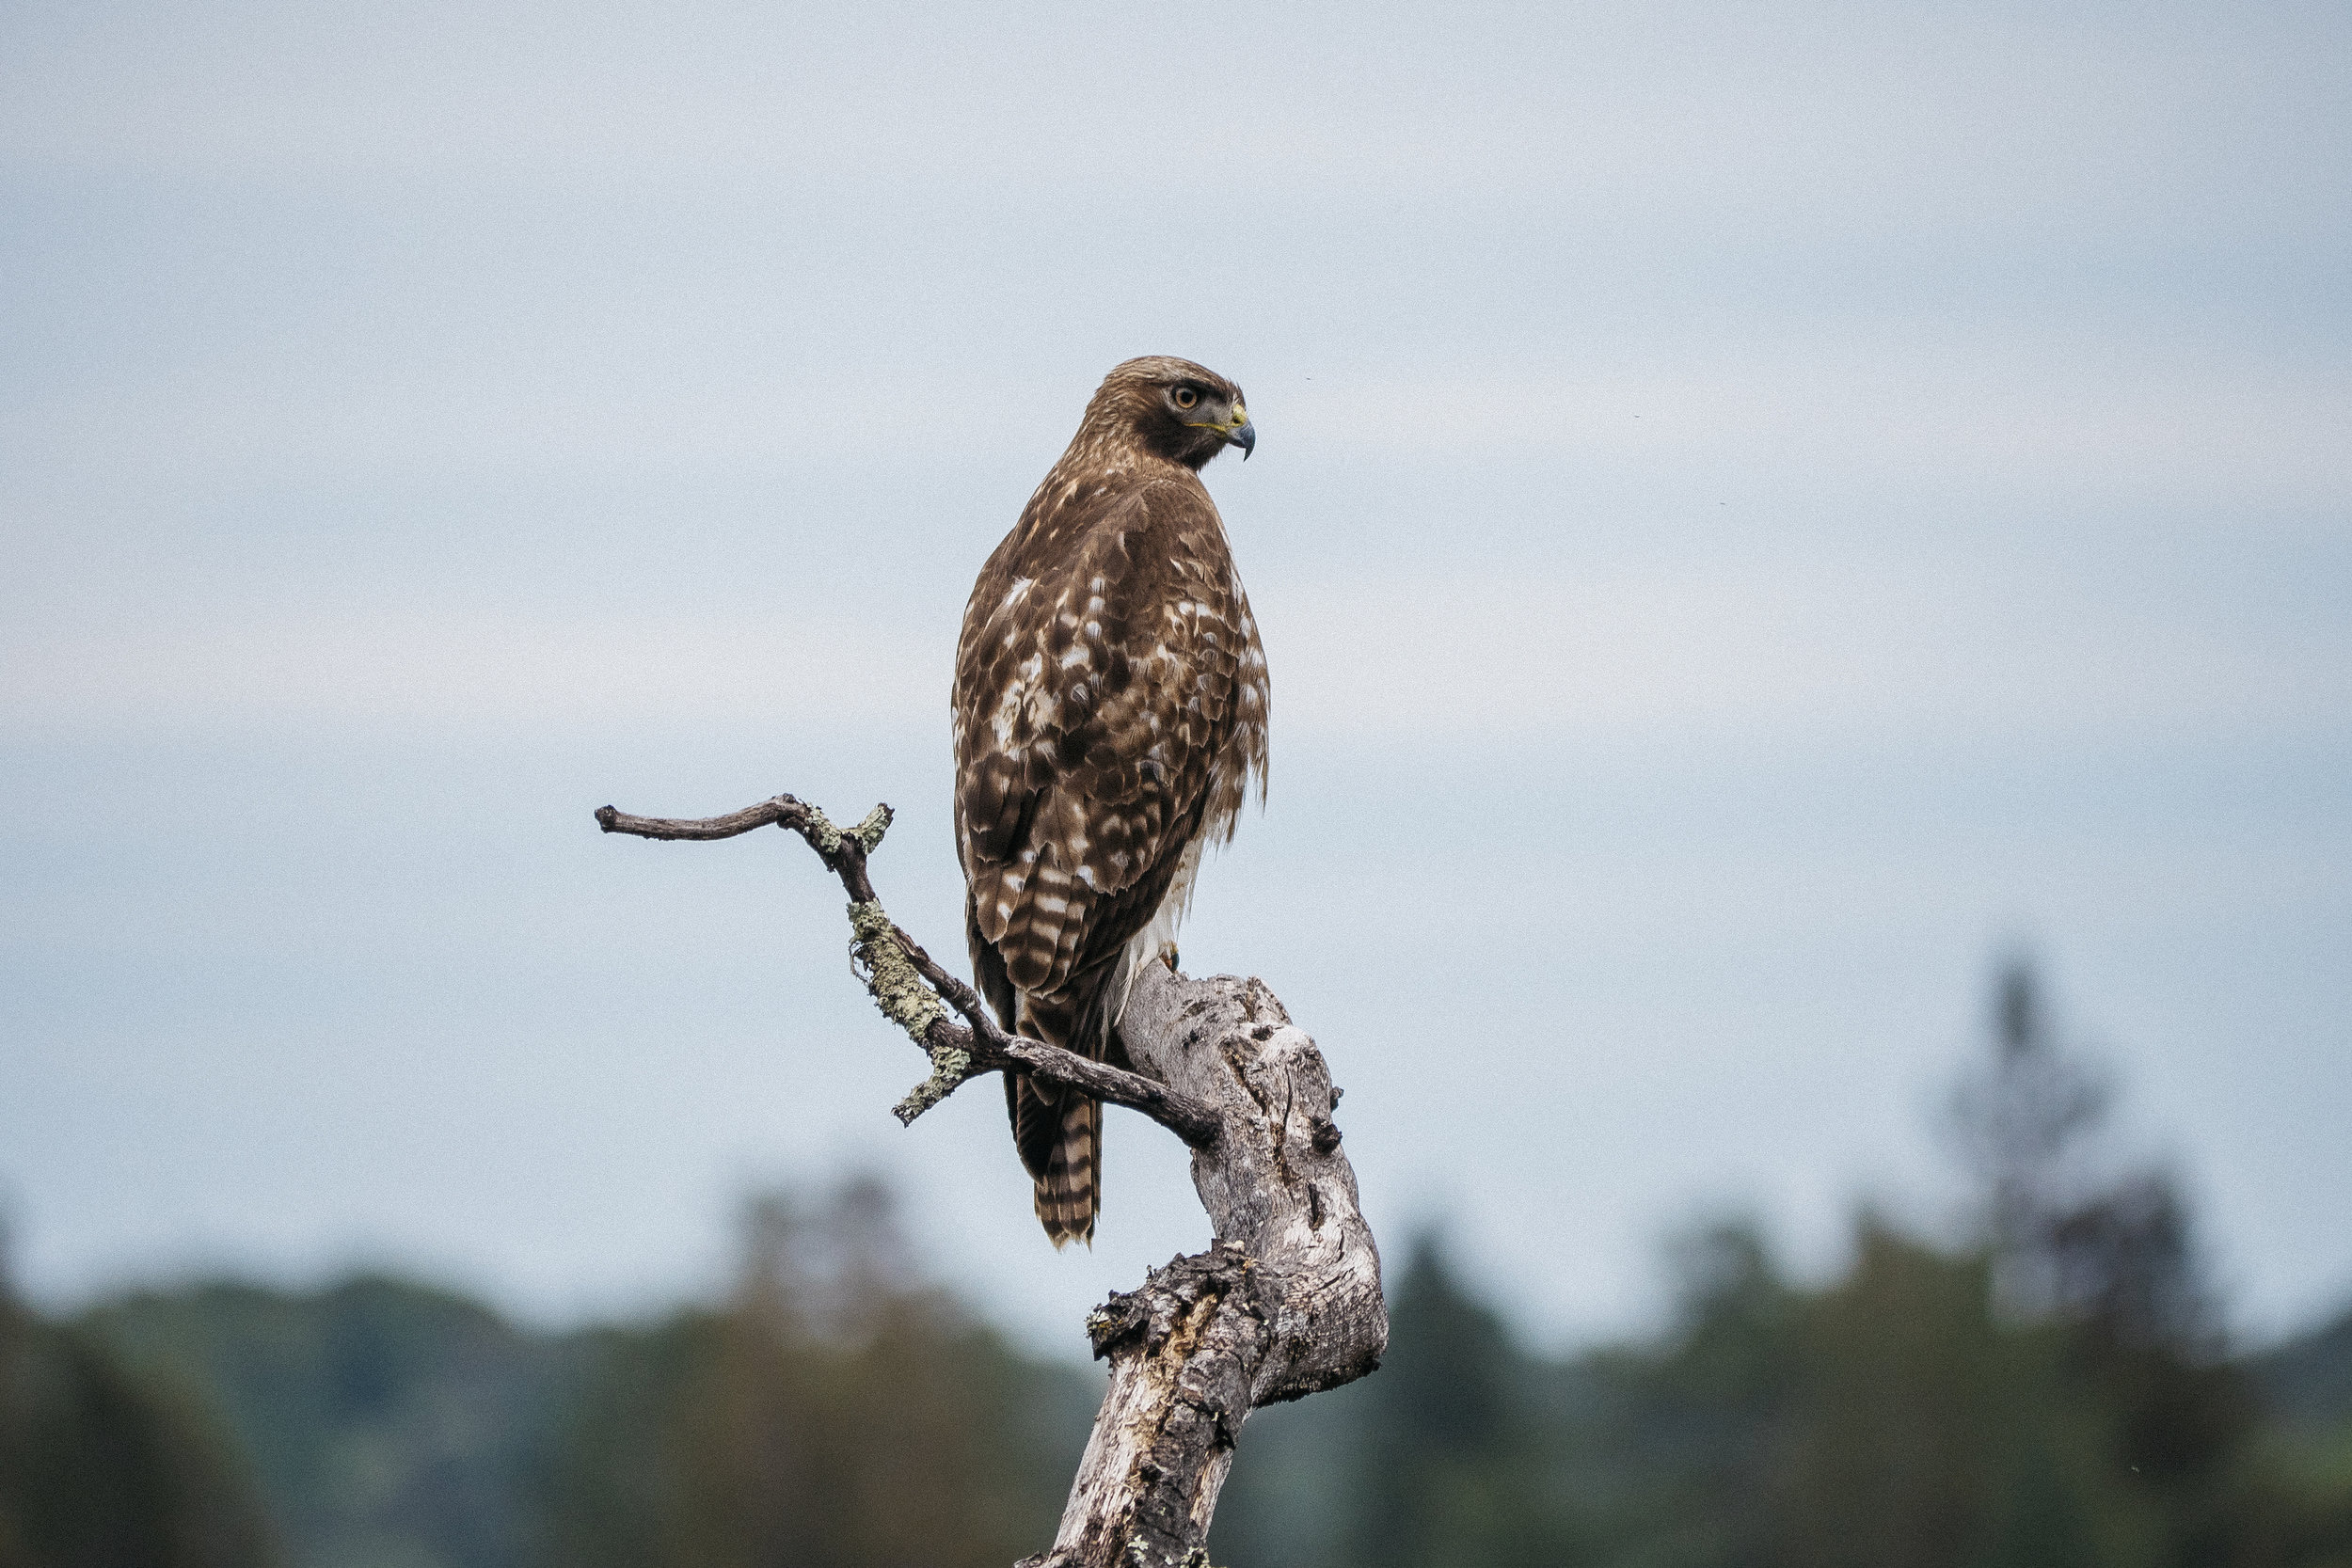 Red Tailed Hawk - Windy Hill Preserve, California - 2018